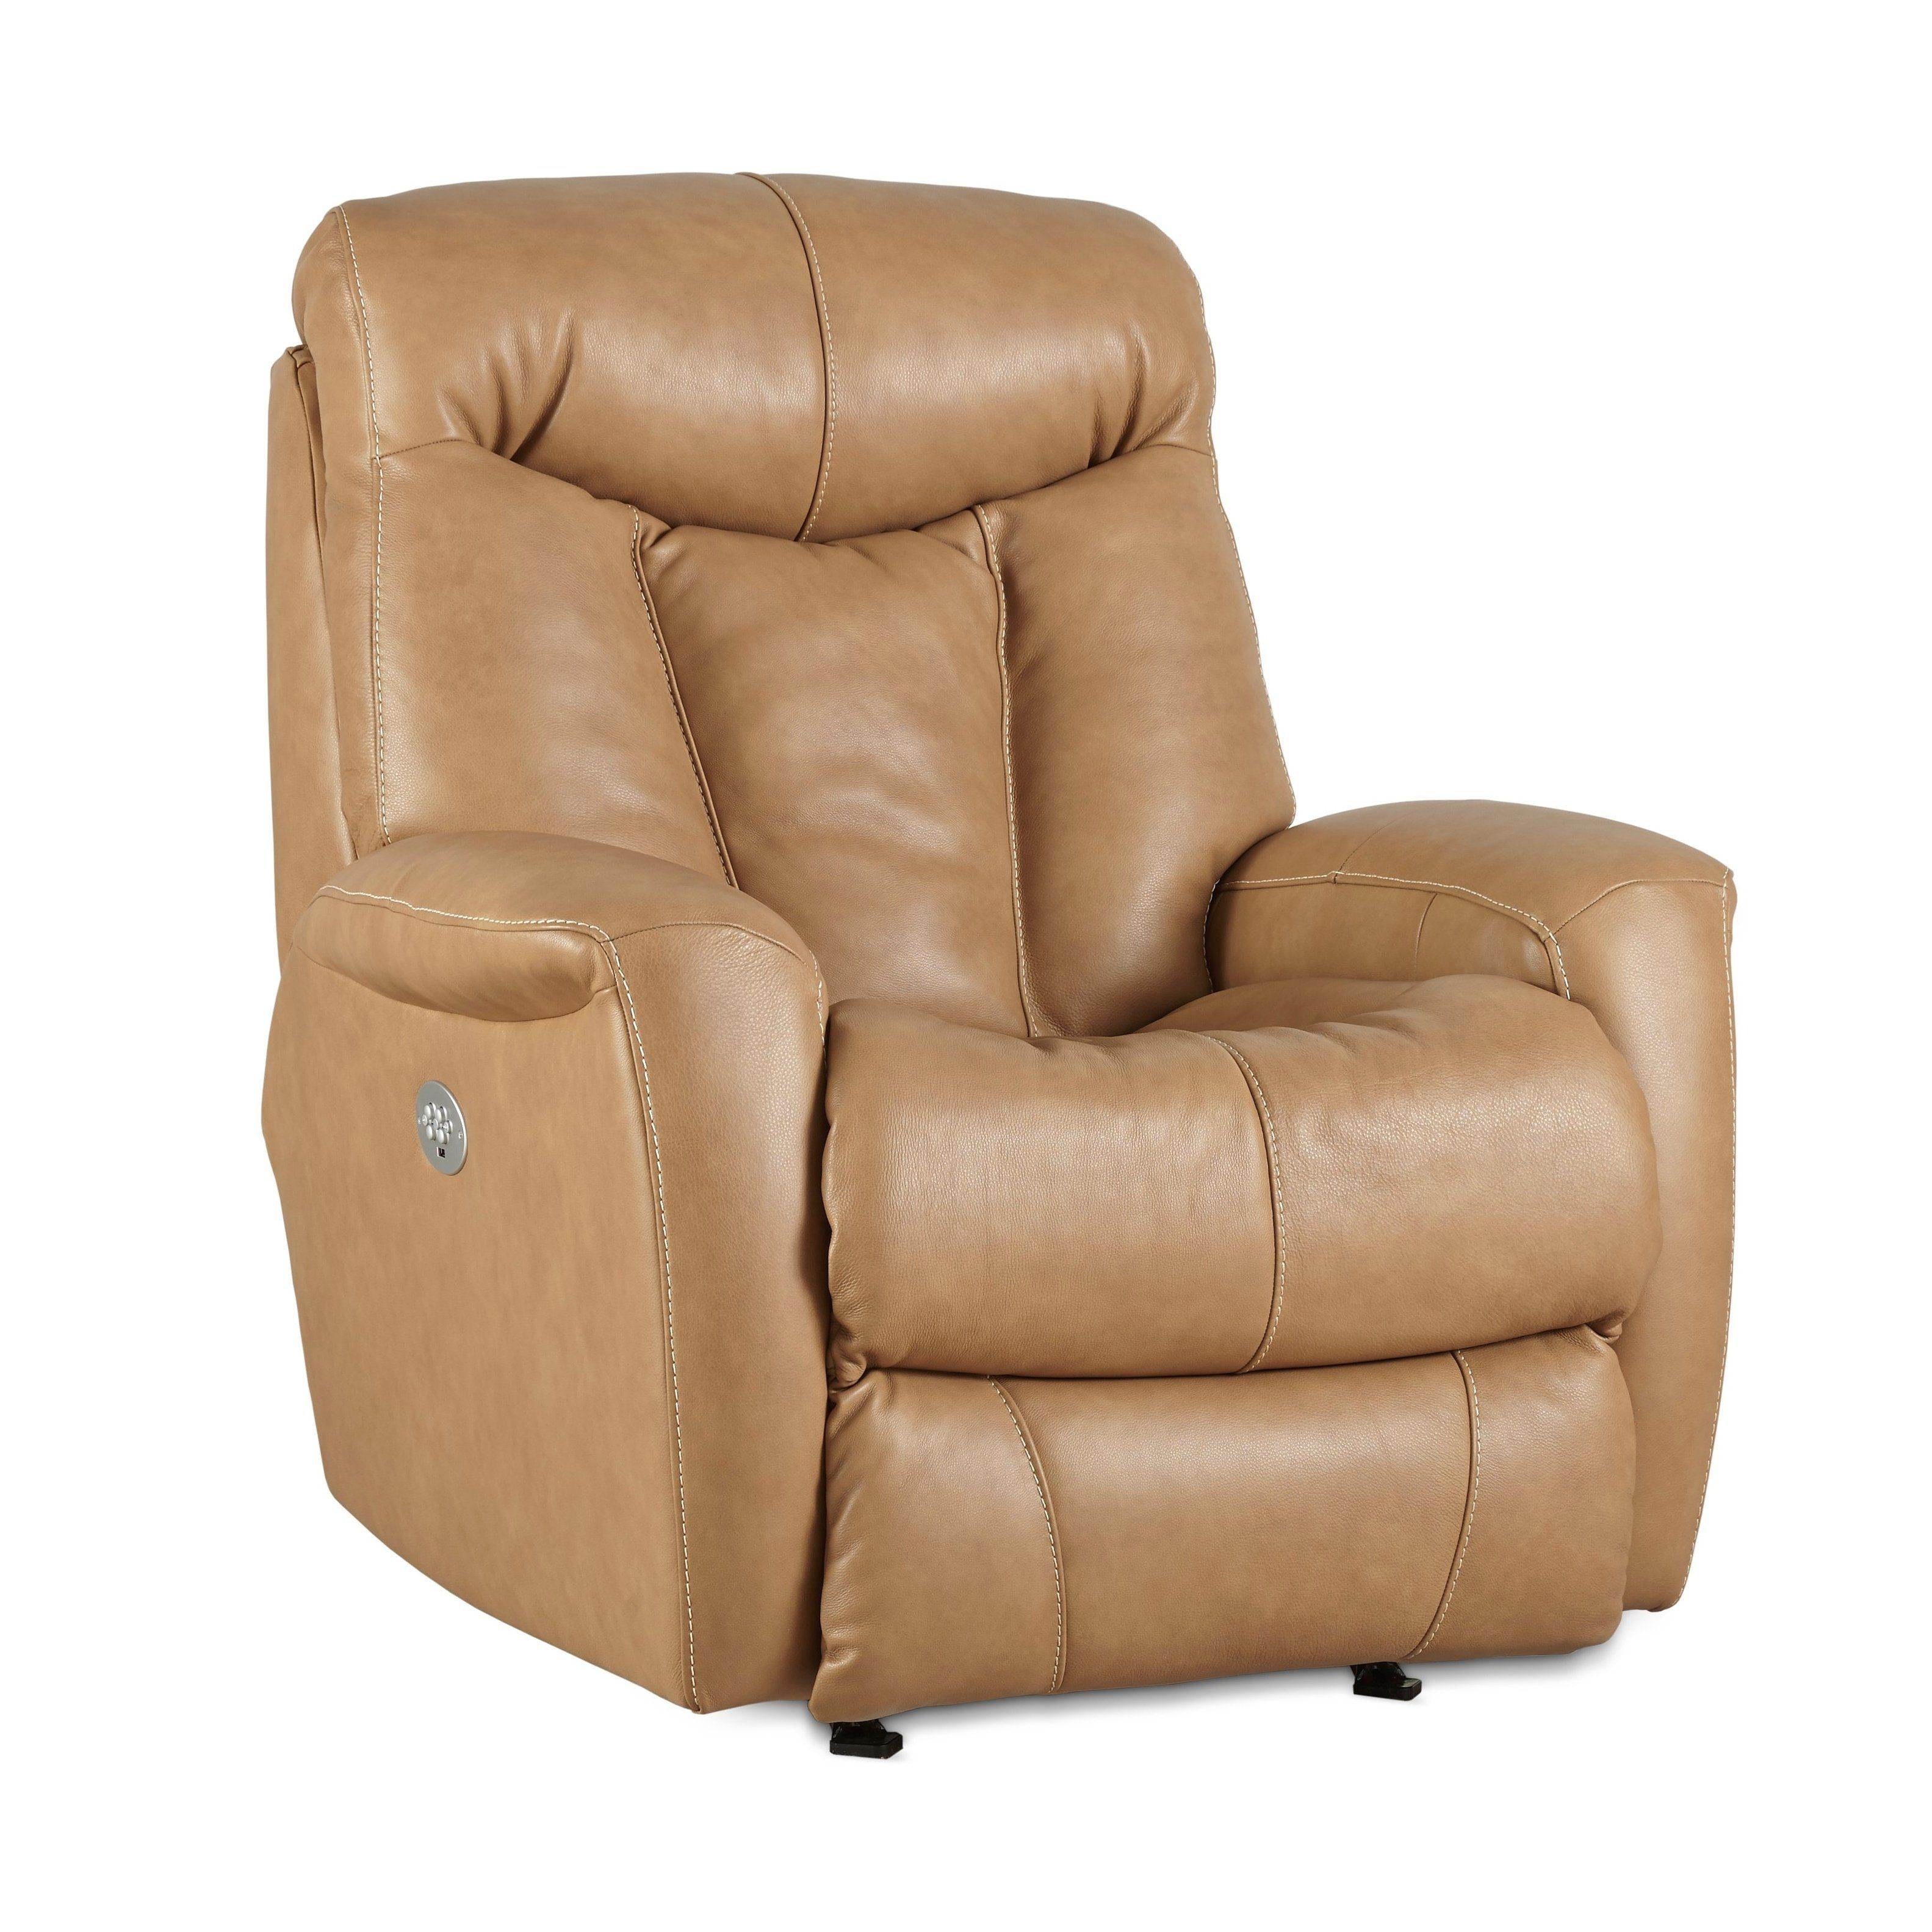 Online Shopping Bedding Furniture Electronics Jewelry Clothing More Recliner Wall Hugger Recliners Power Recliners